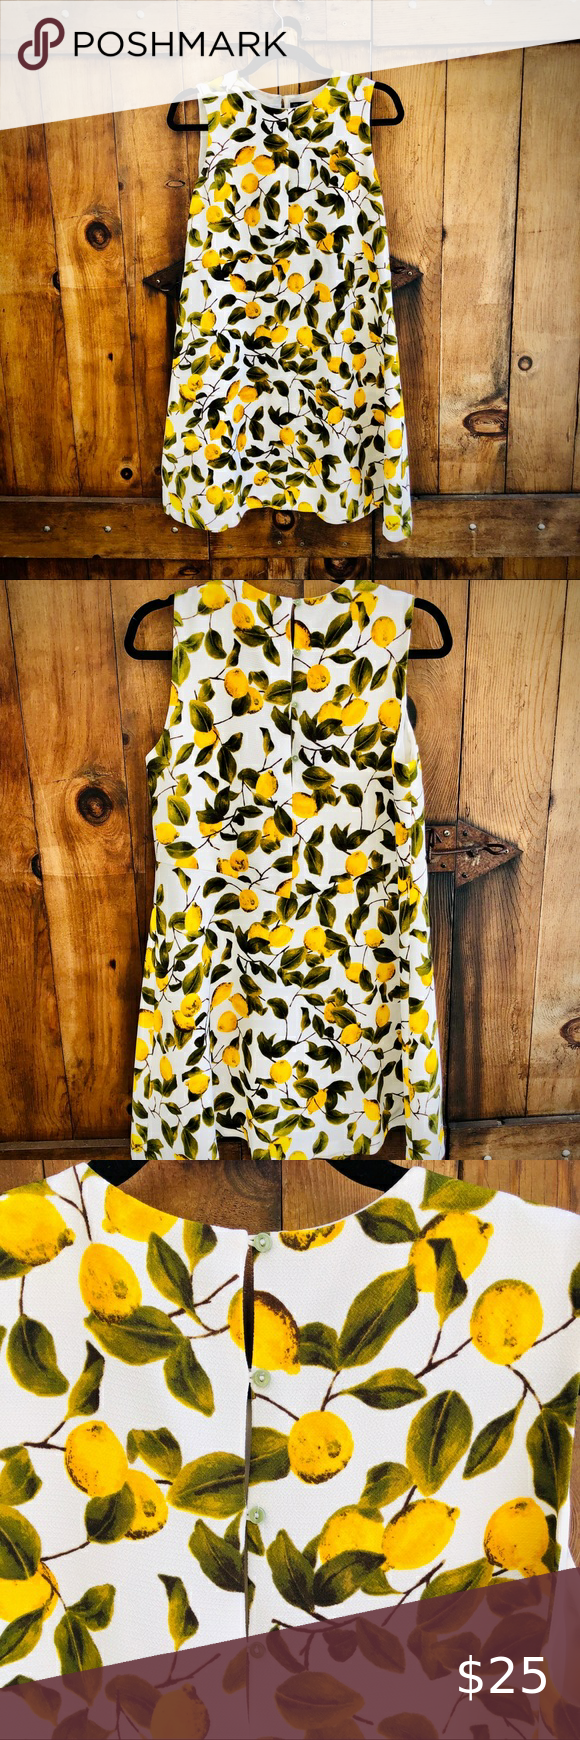 Zara Lemon Printed Dress Lemon Print Dress Lemon Print Zara